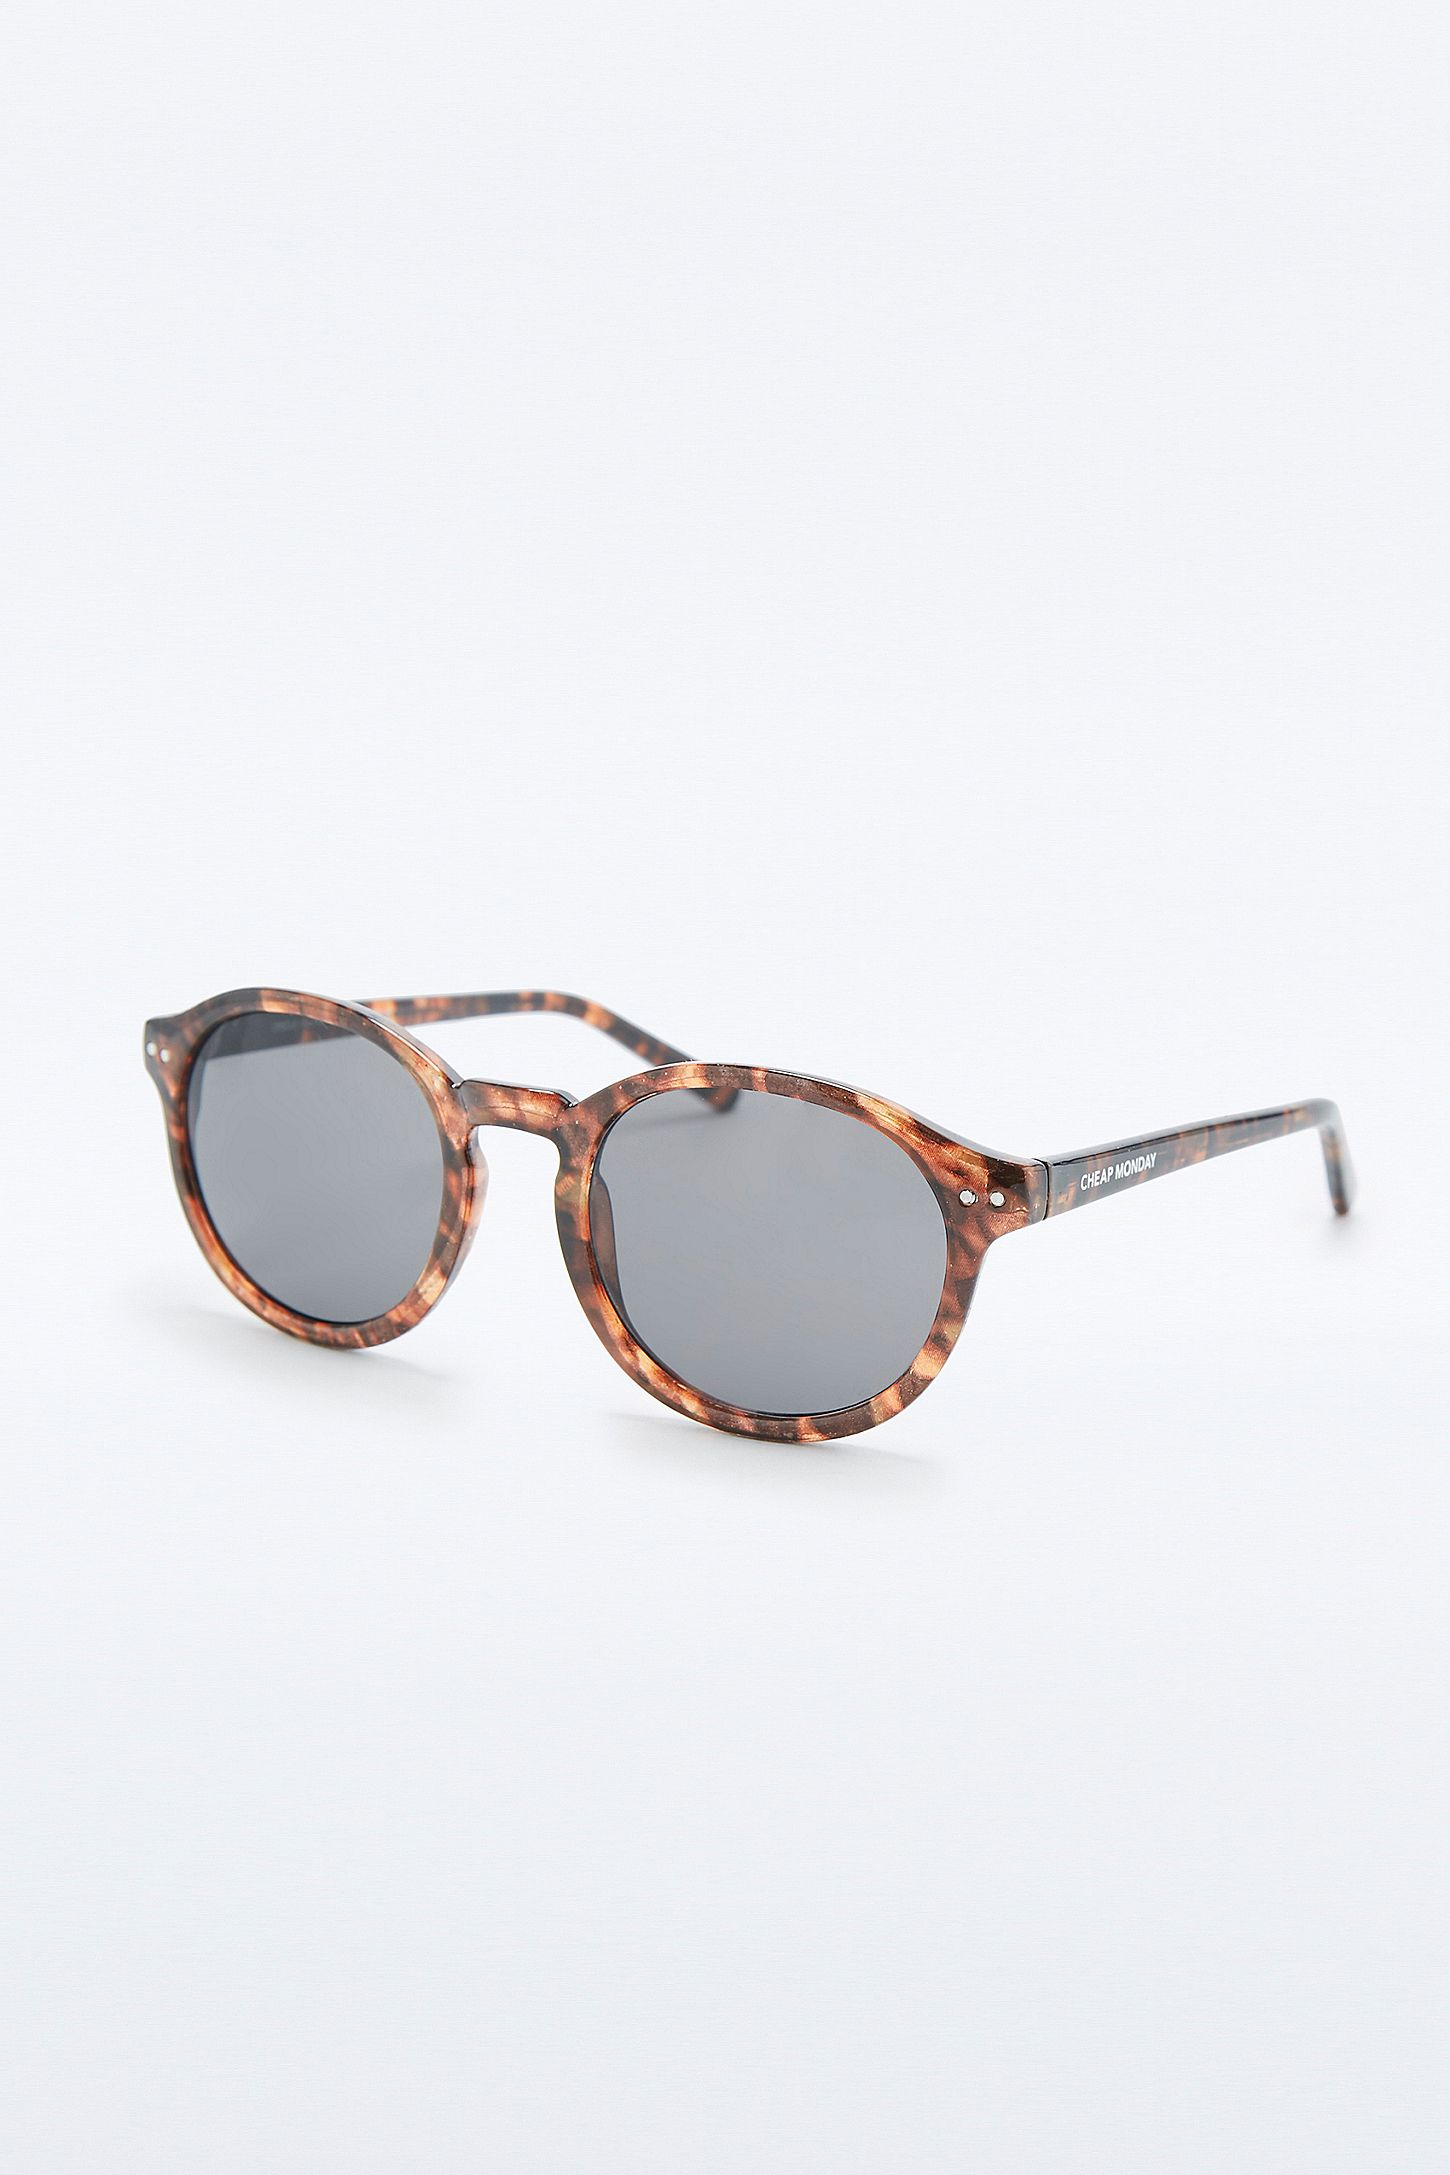 d13c804f4ea Cheap Monday Island Tortoiseshell Circle Glasses. Click on image to zoom.  Hover to zoom. Double Tap to Zoom